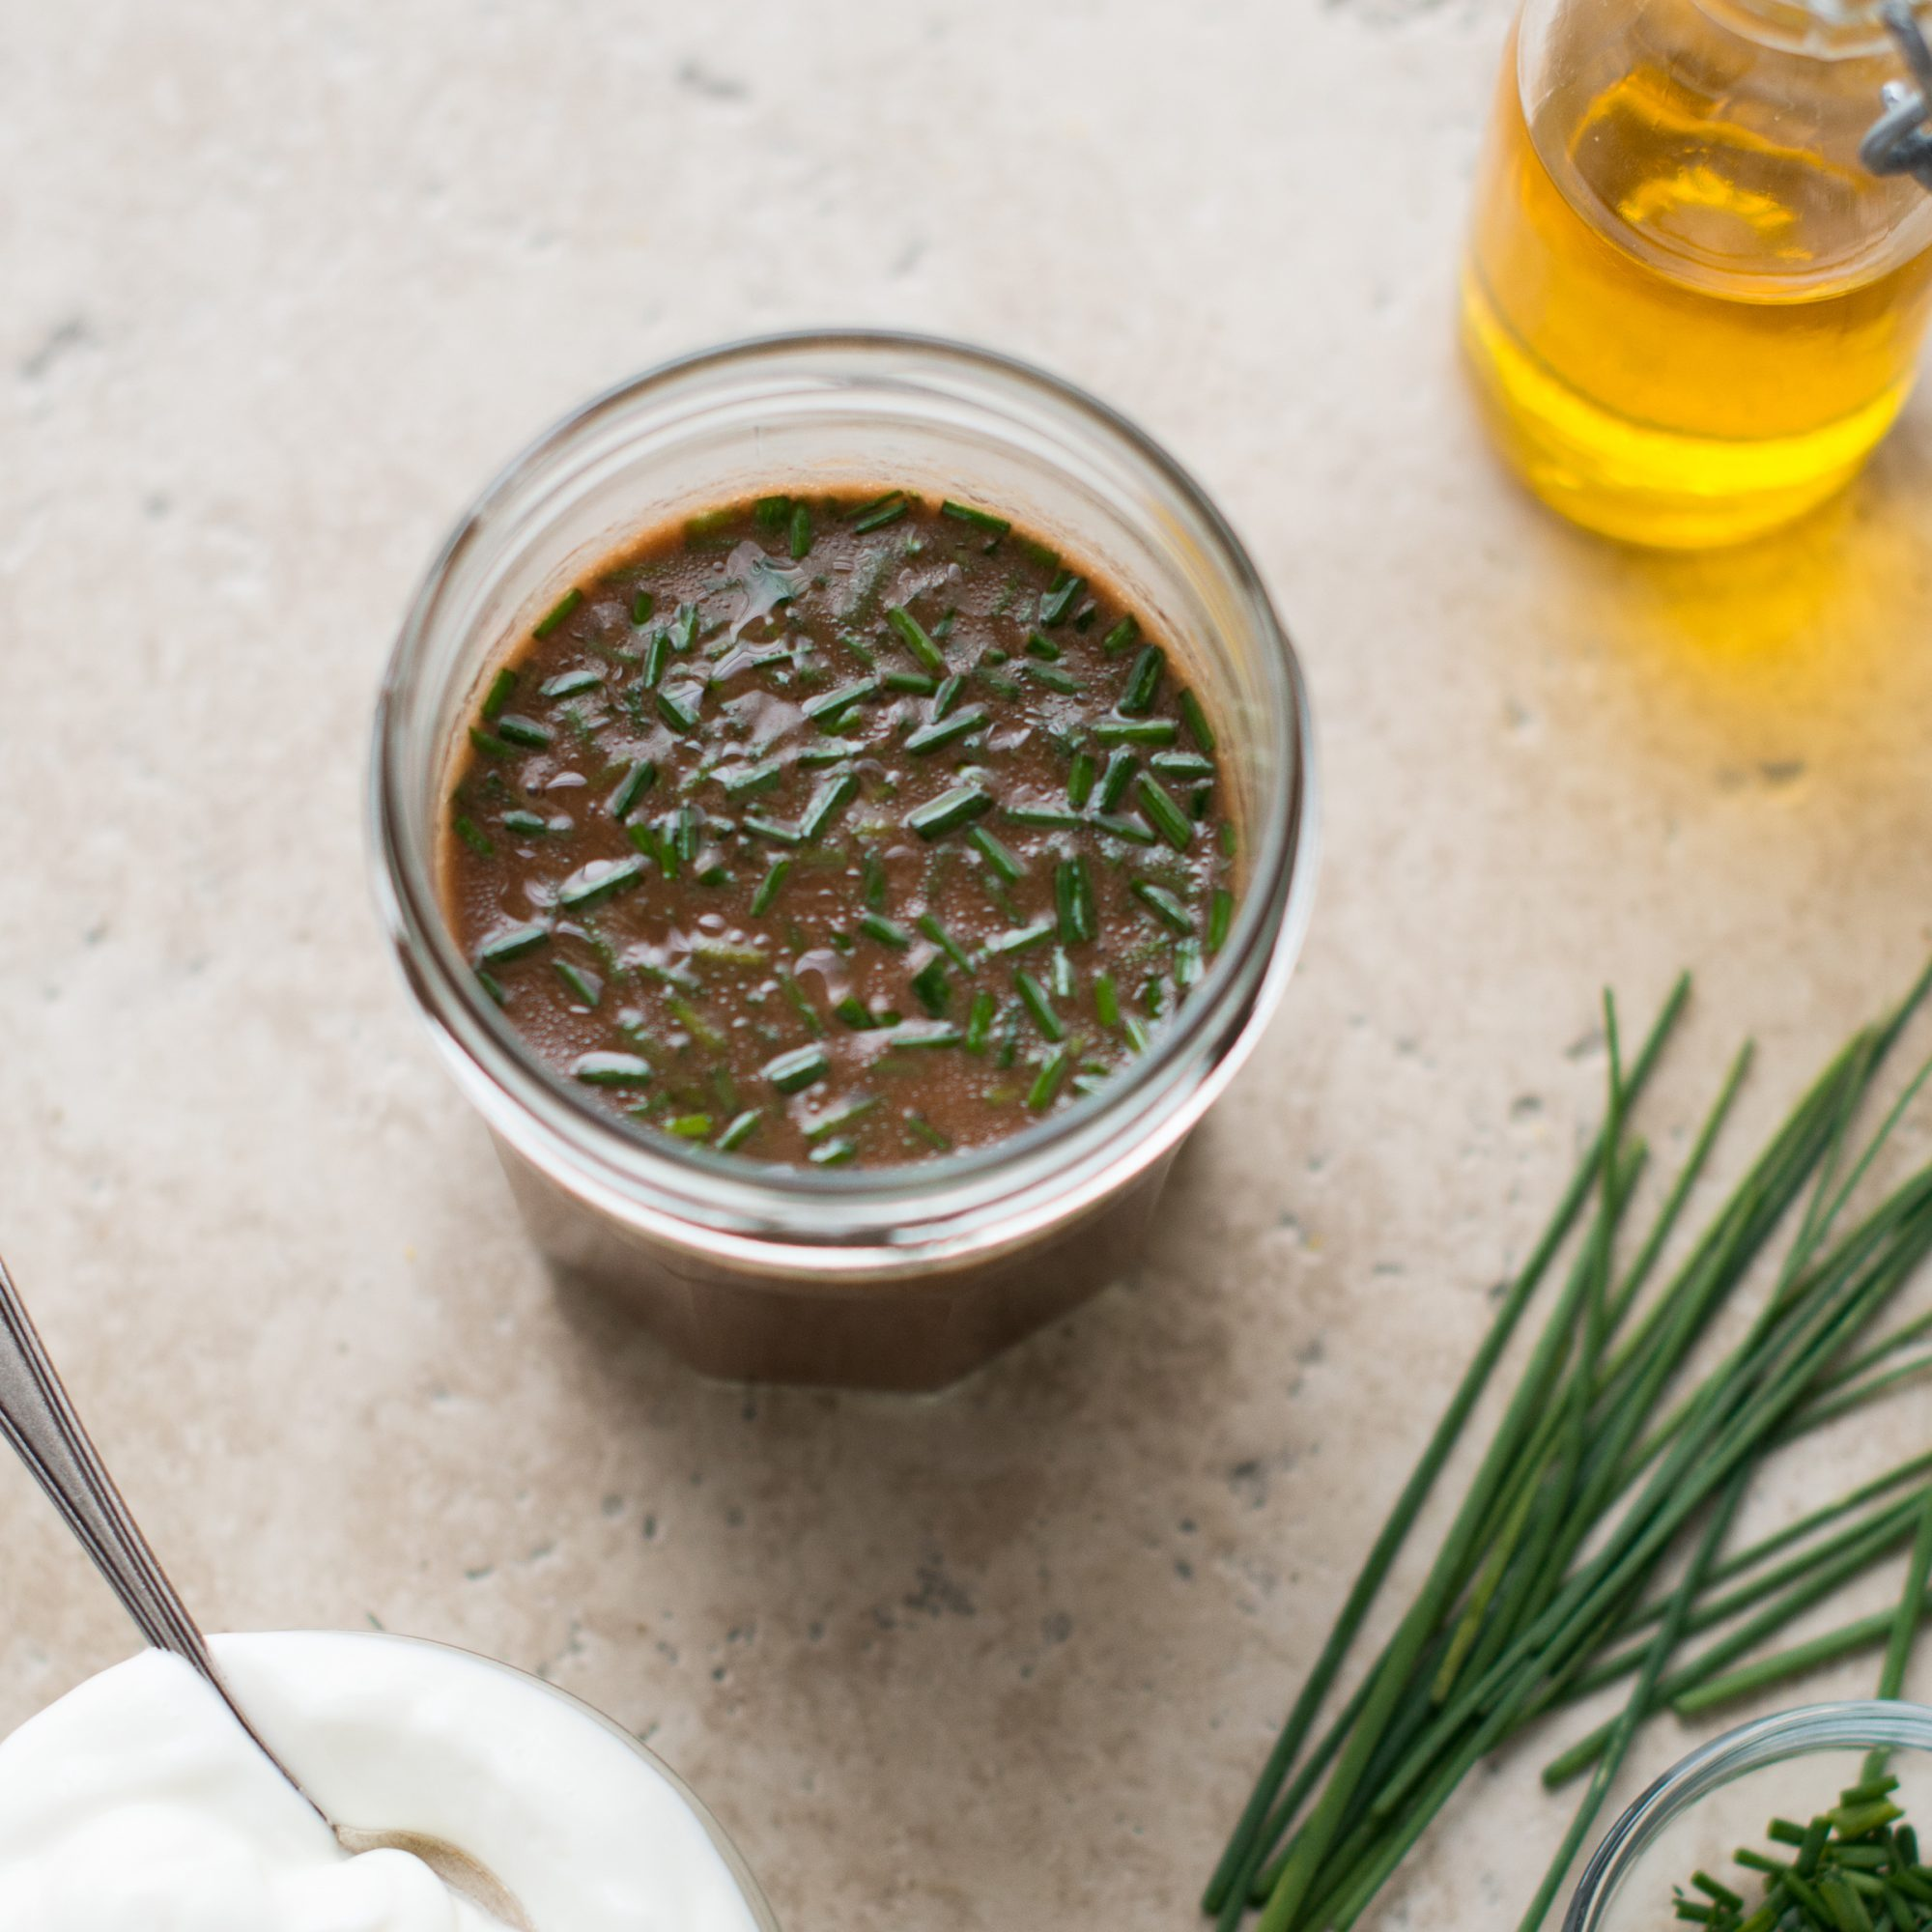 Creamy Balsamic, Chive & Greek Yogurt Vinaigrette